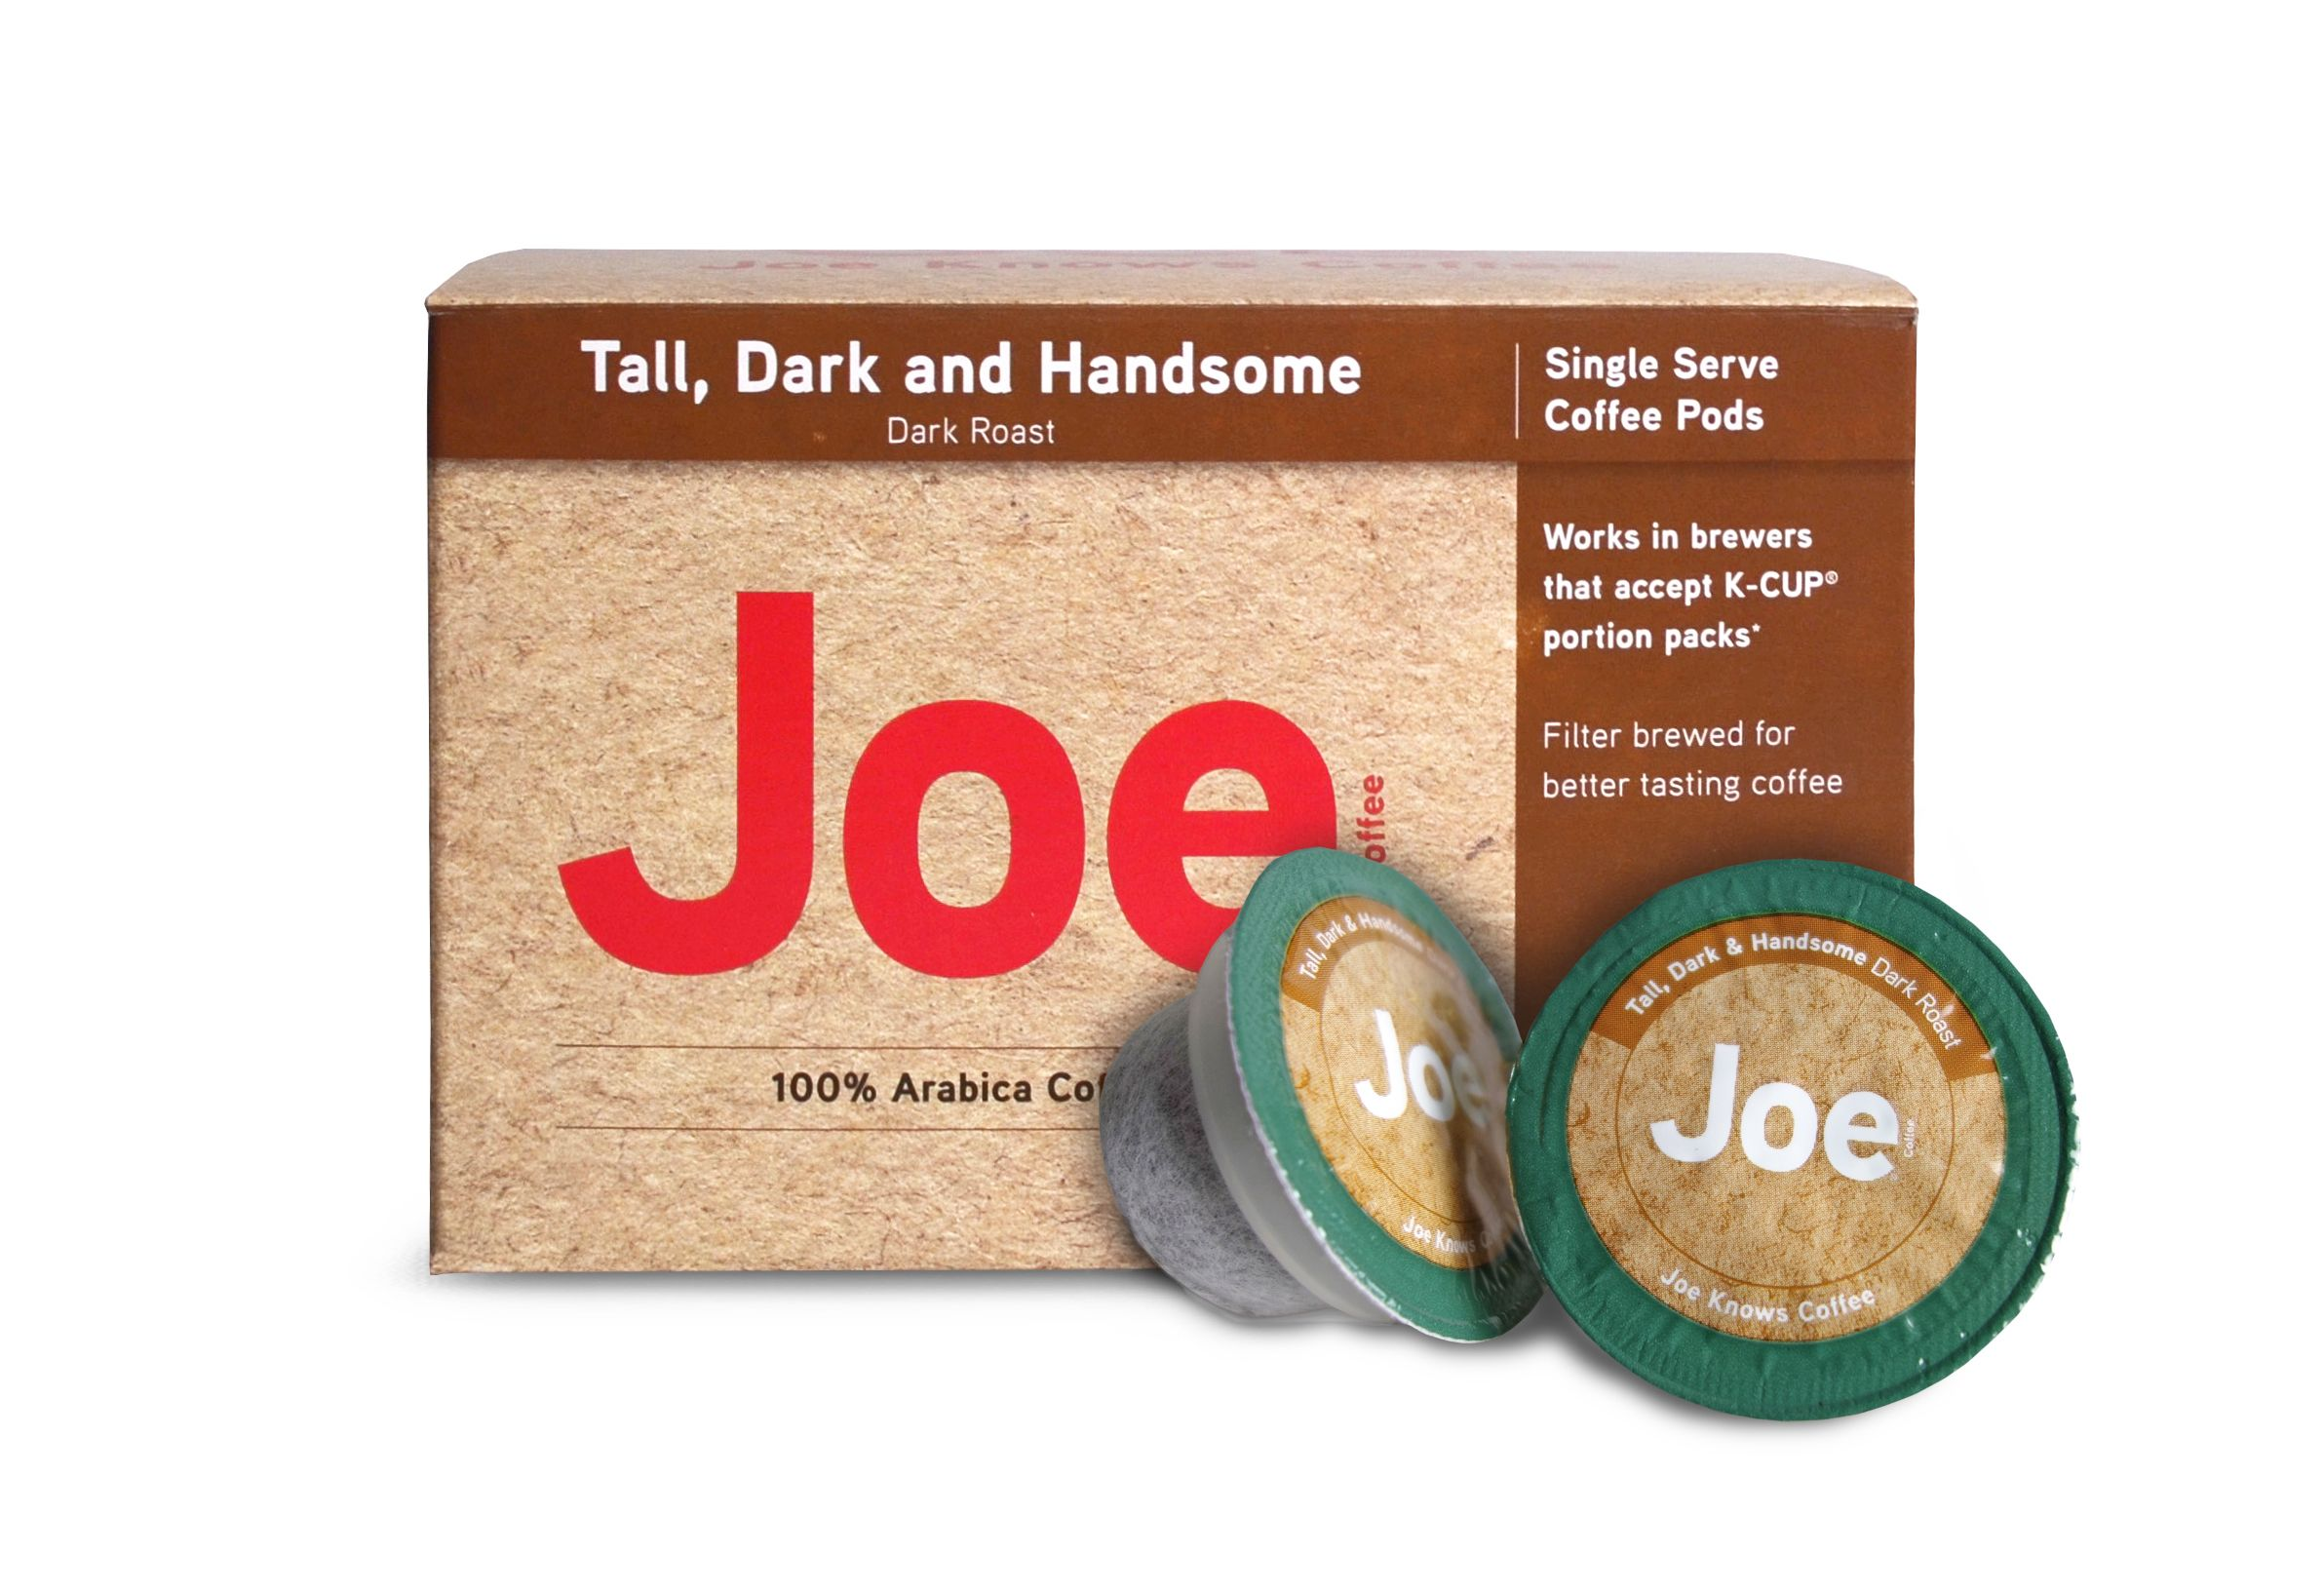 Joe knows coffee tall dark and handsome is our number one